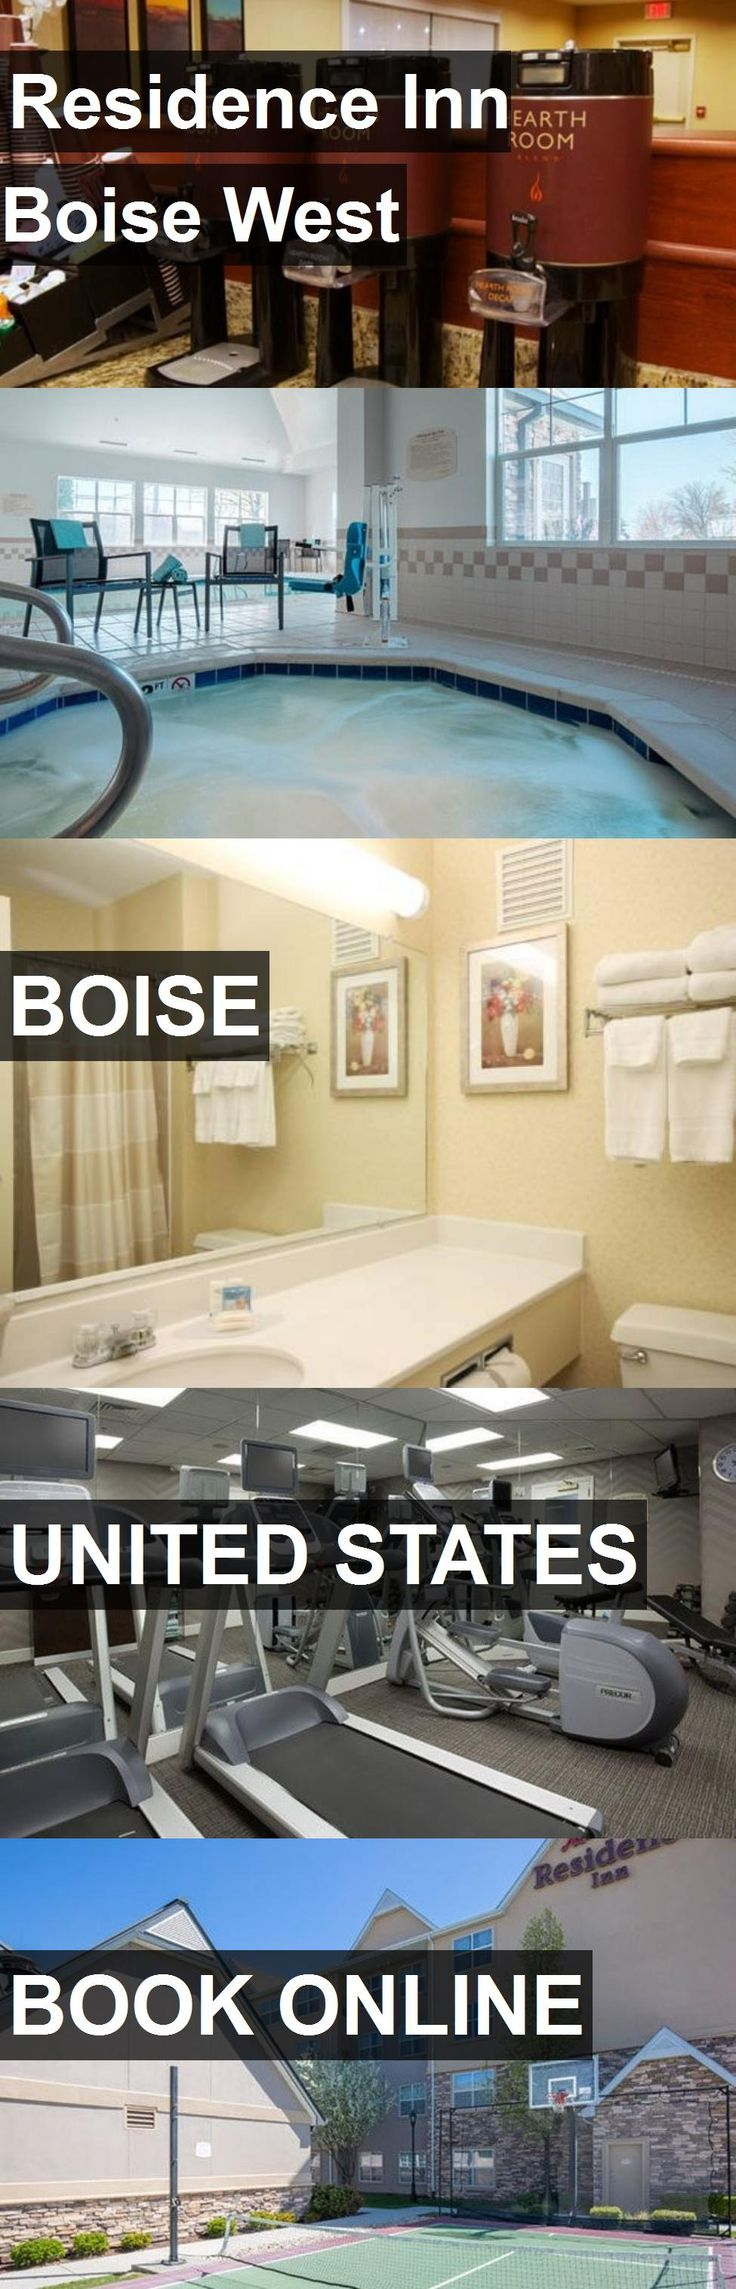 Hotel Residence Inn Boise West in Boise, United States. For more information, photos, reviews and best prices please follow the link. #UnitedStates #Boise #travel #vacation #hotel